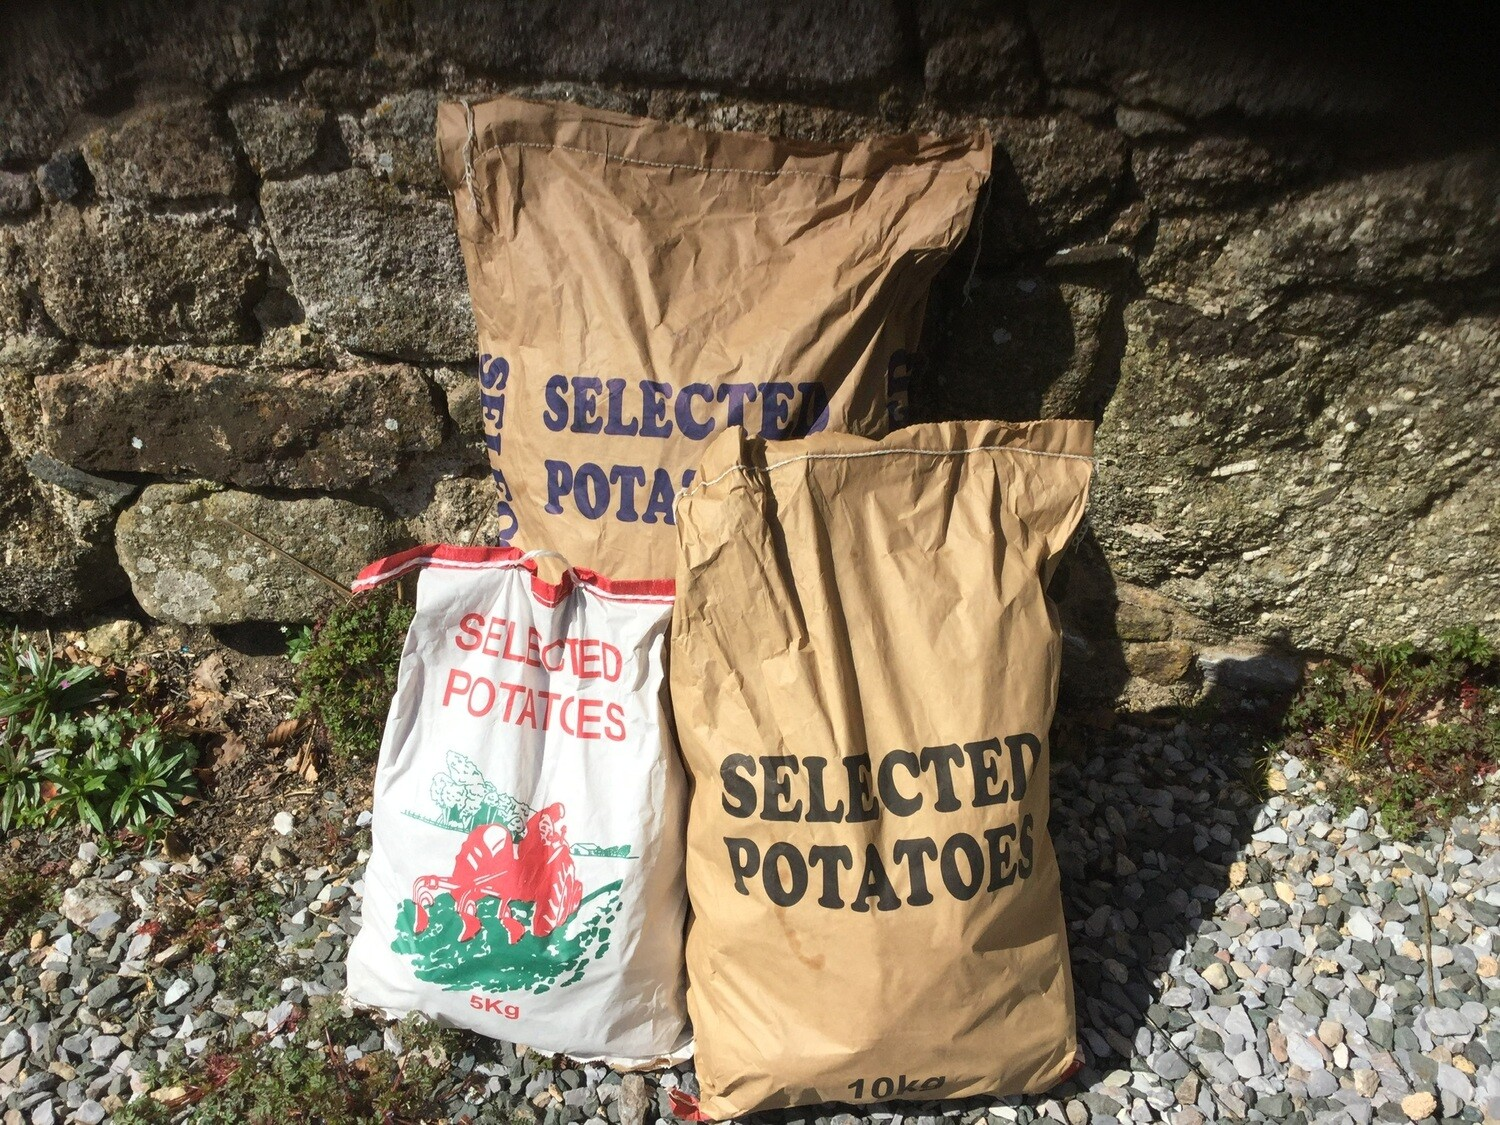 Marfona Farm Potatoes - Unwashed